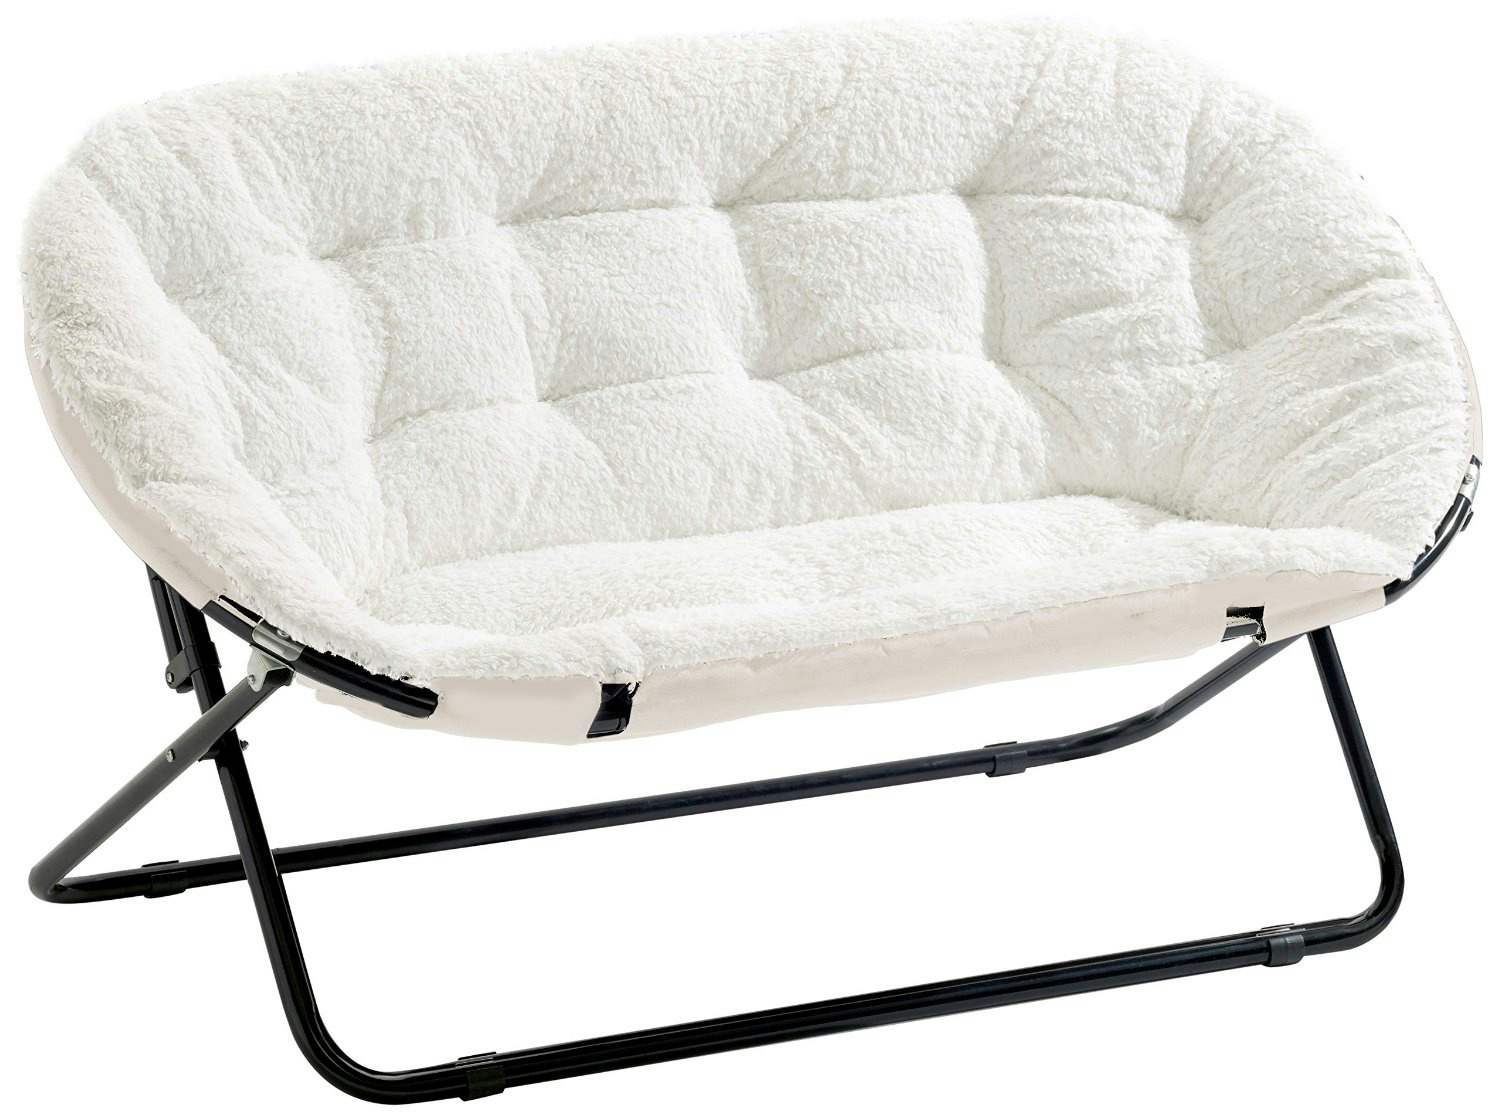 Urban Shop Double Saucer Chair White Sherpa